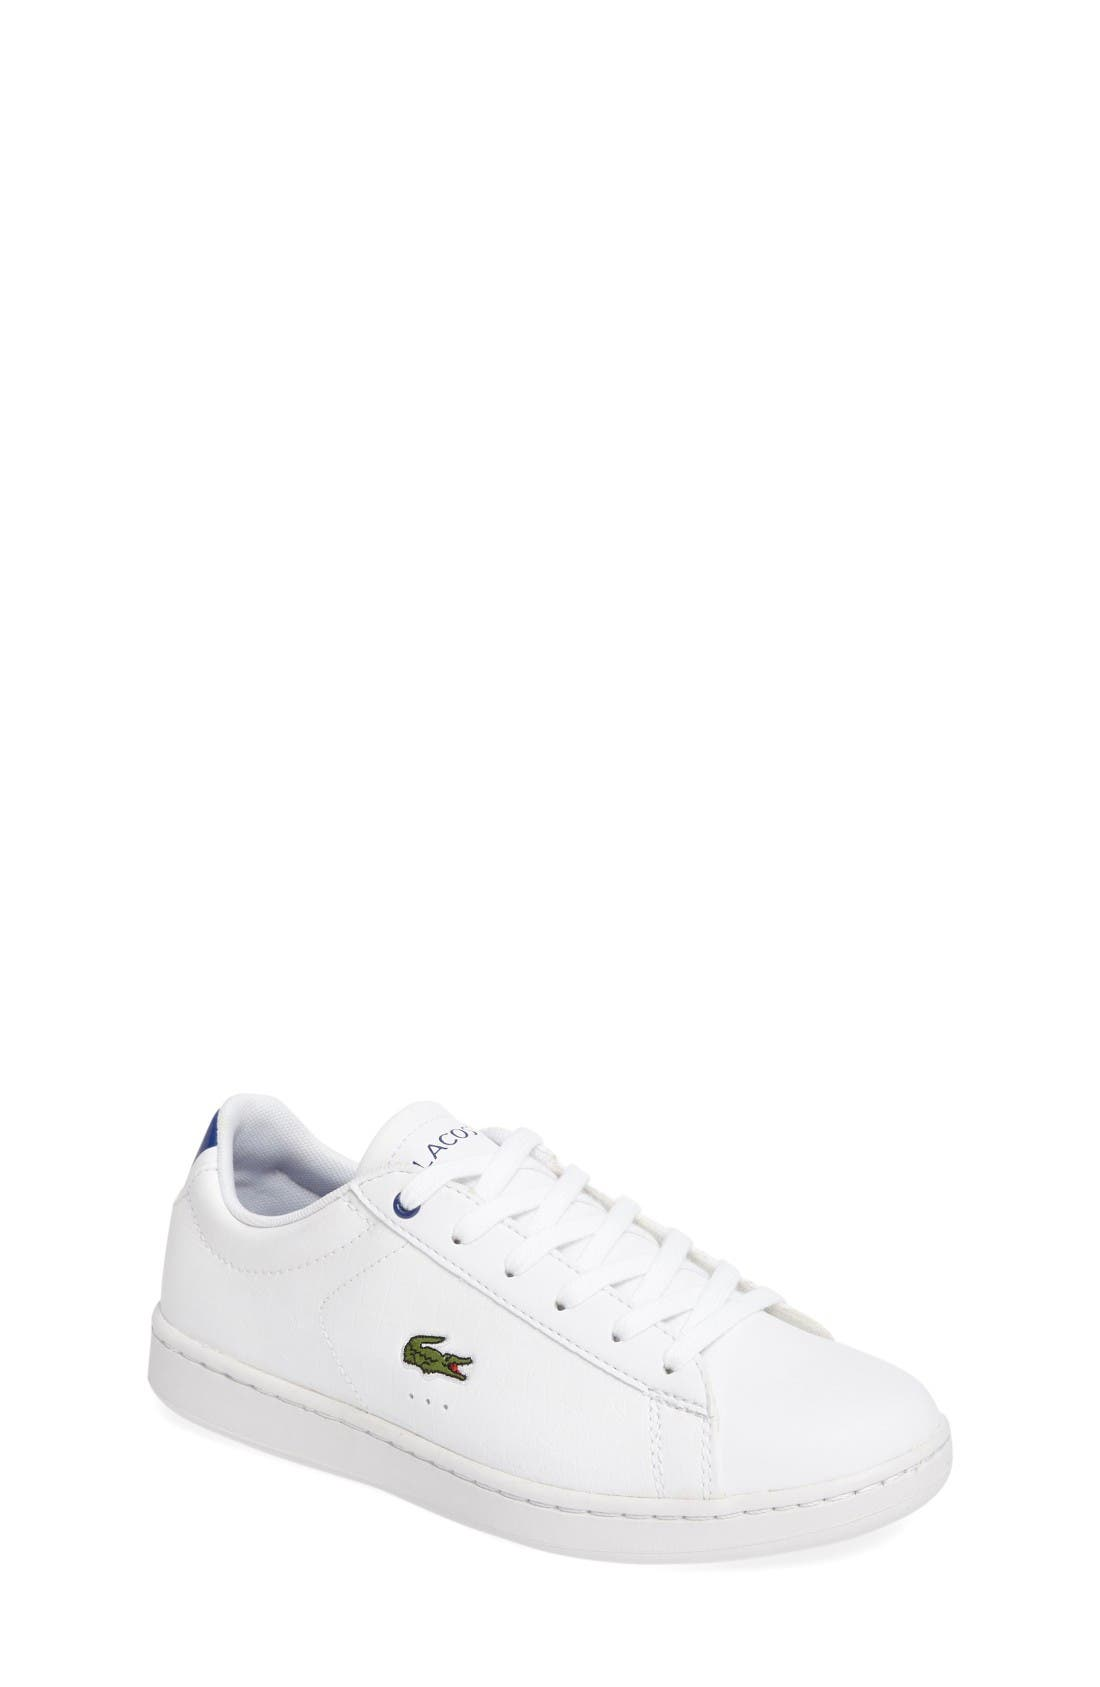 Carnaby EVO Sneaker,                         Main,                         color, White/ Blue